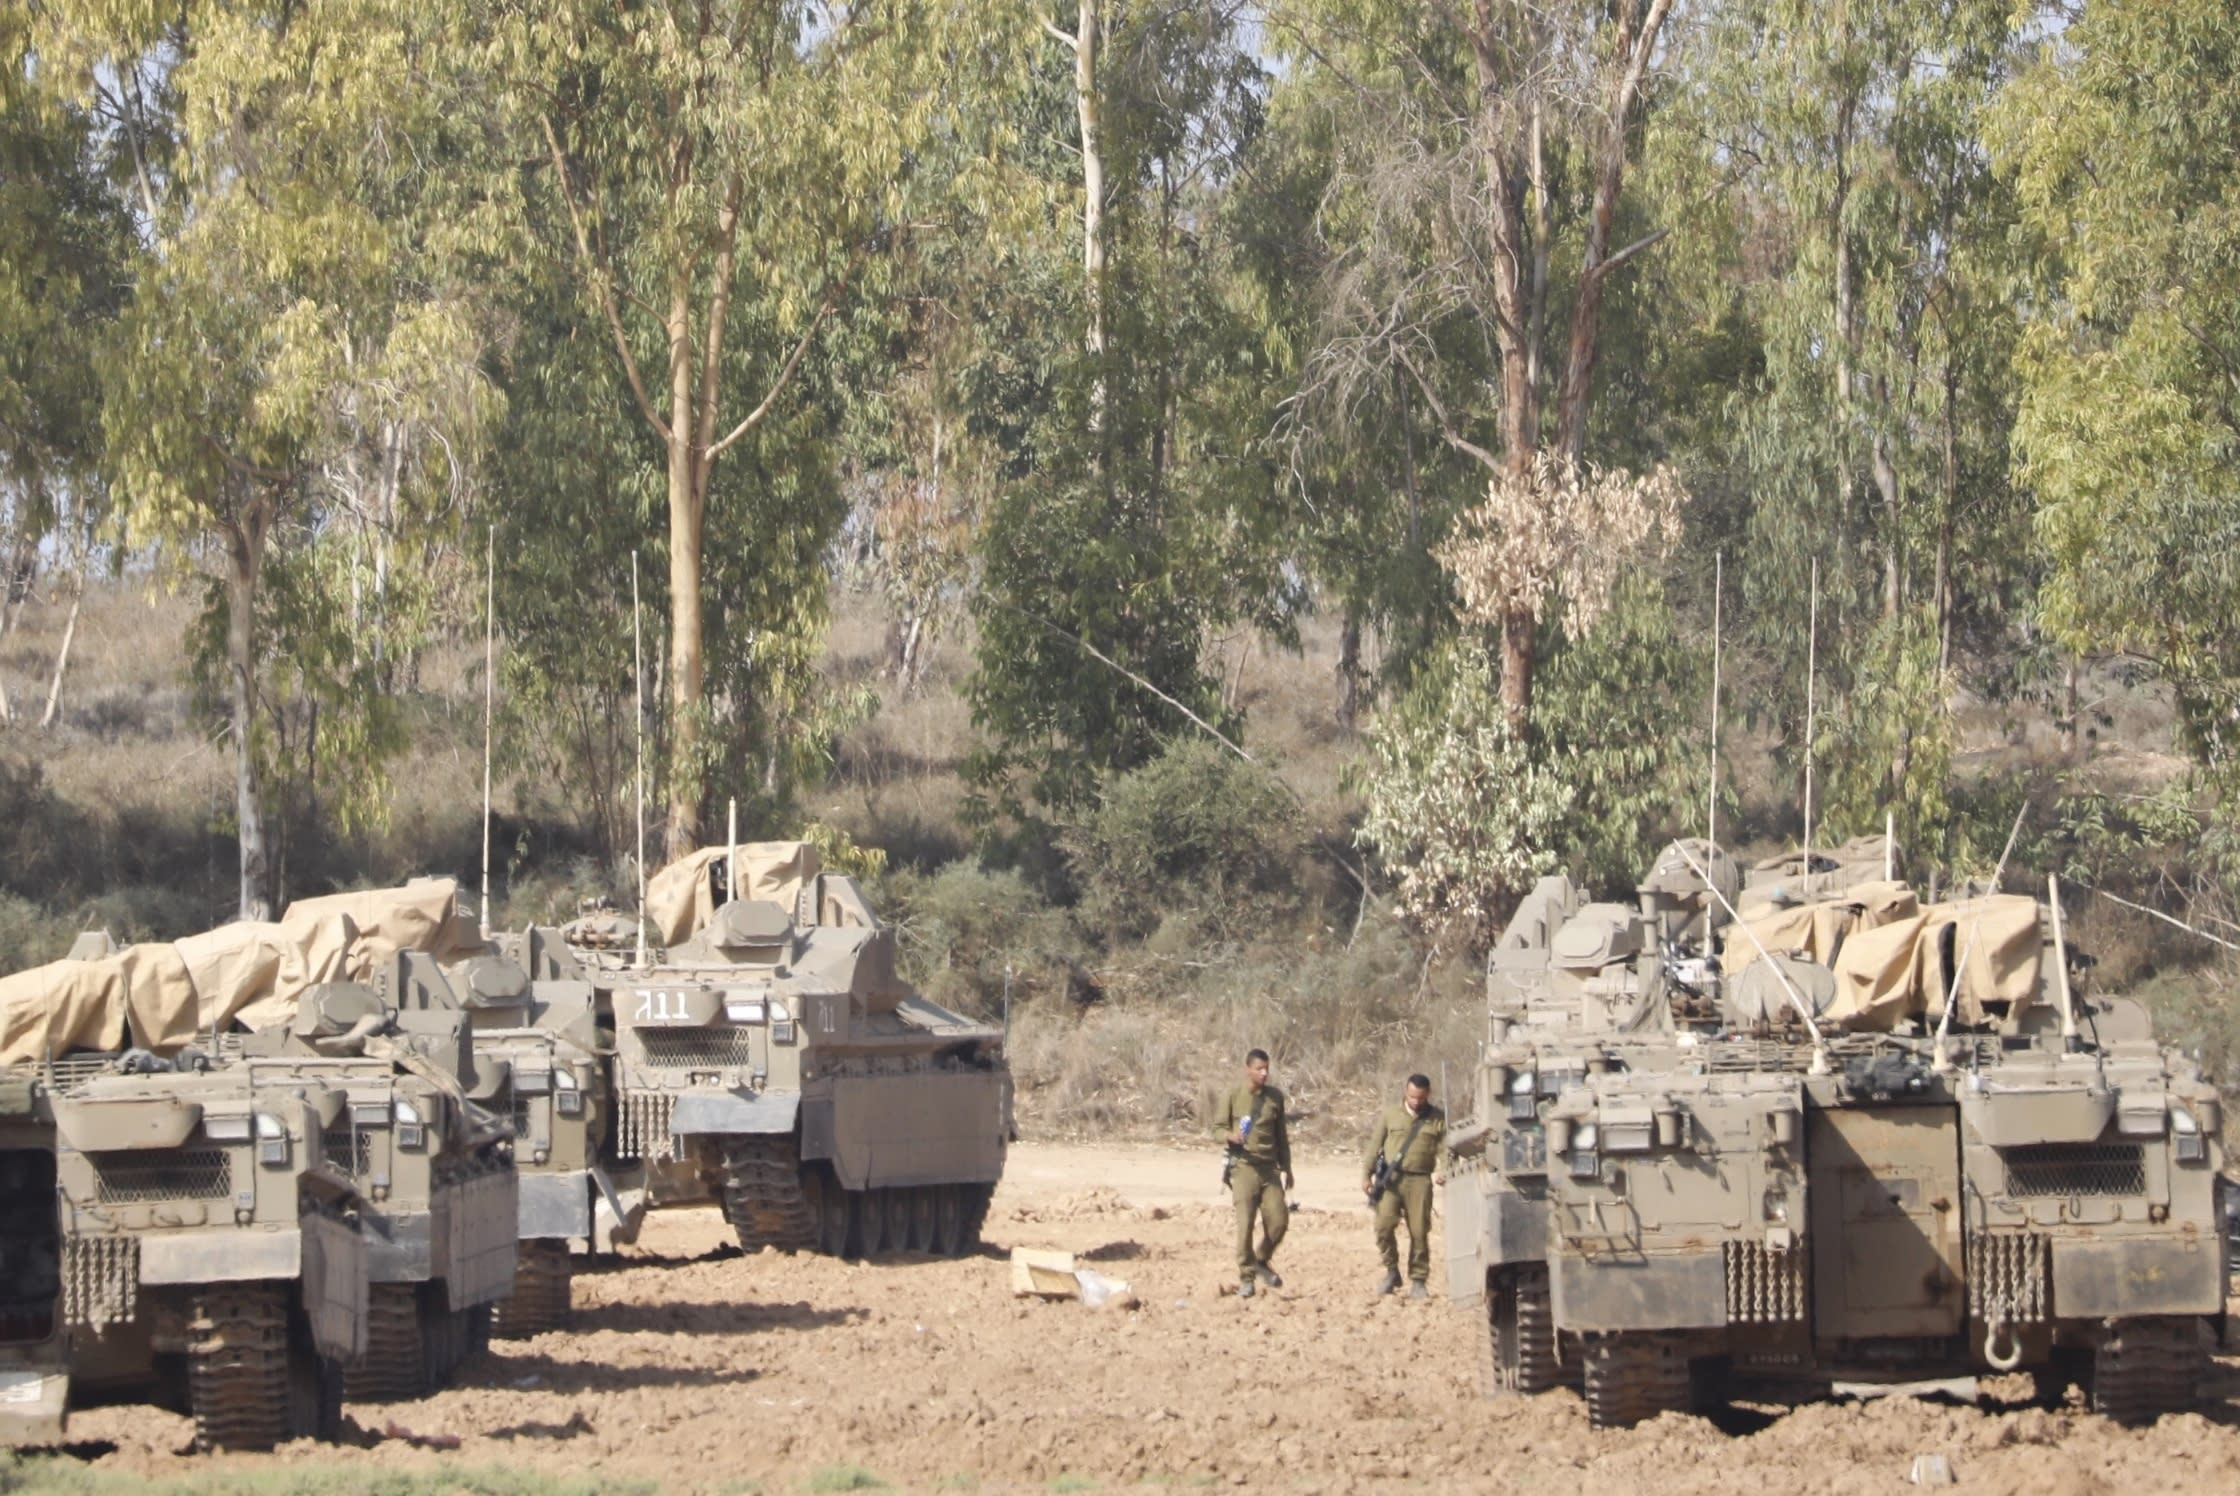 Israeli soldiers walk past military vehicles in a gathering point near the Israel-Gaza Border, Thursday, Nov. 14, 2019. Israel and the militant Islamic Jihad group in Gaza reached a cease-fire on Thursday to end the heaviest Gaza fighting in months. (AP Photo/Ariel Schalit)